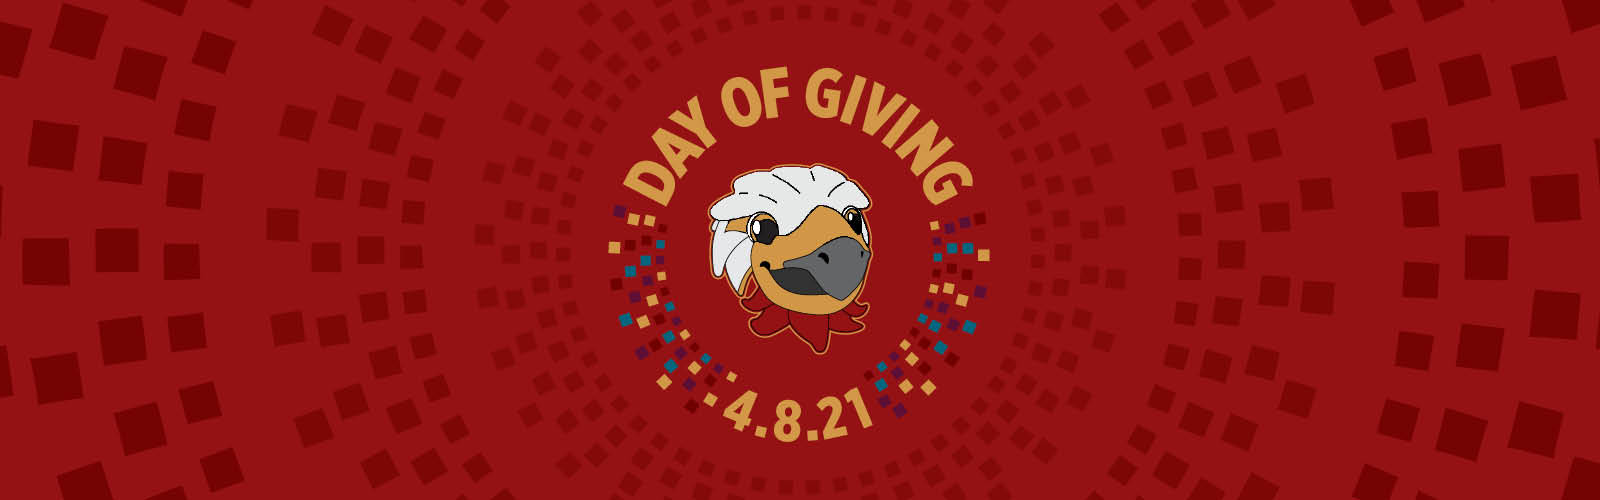 Day of Giving #KohawkDay